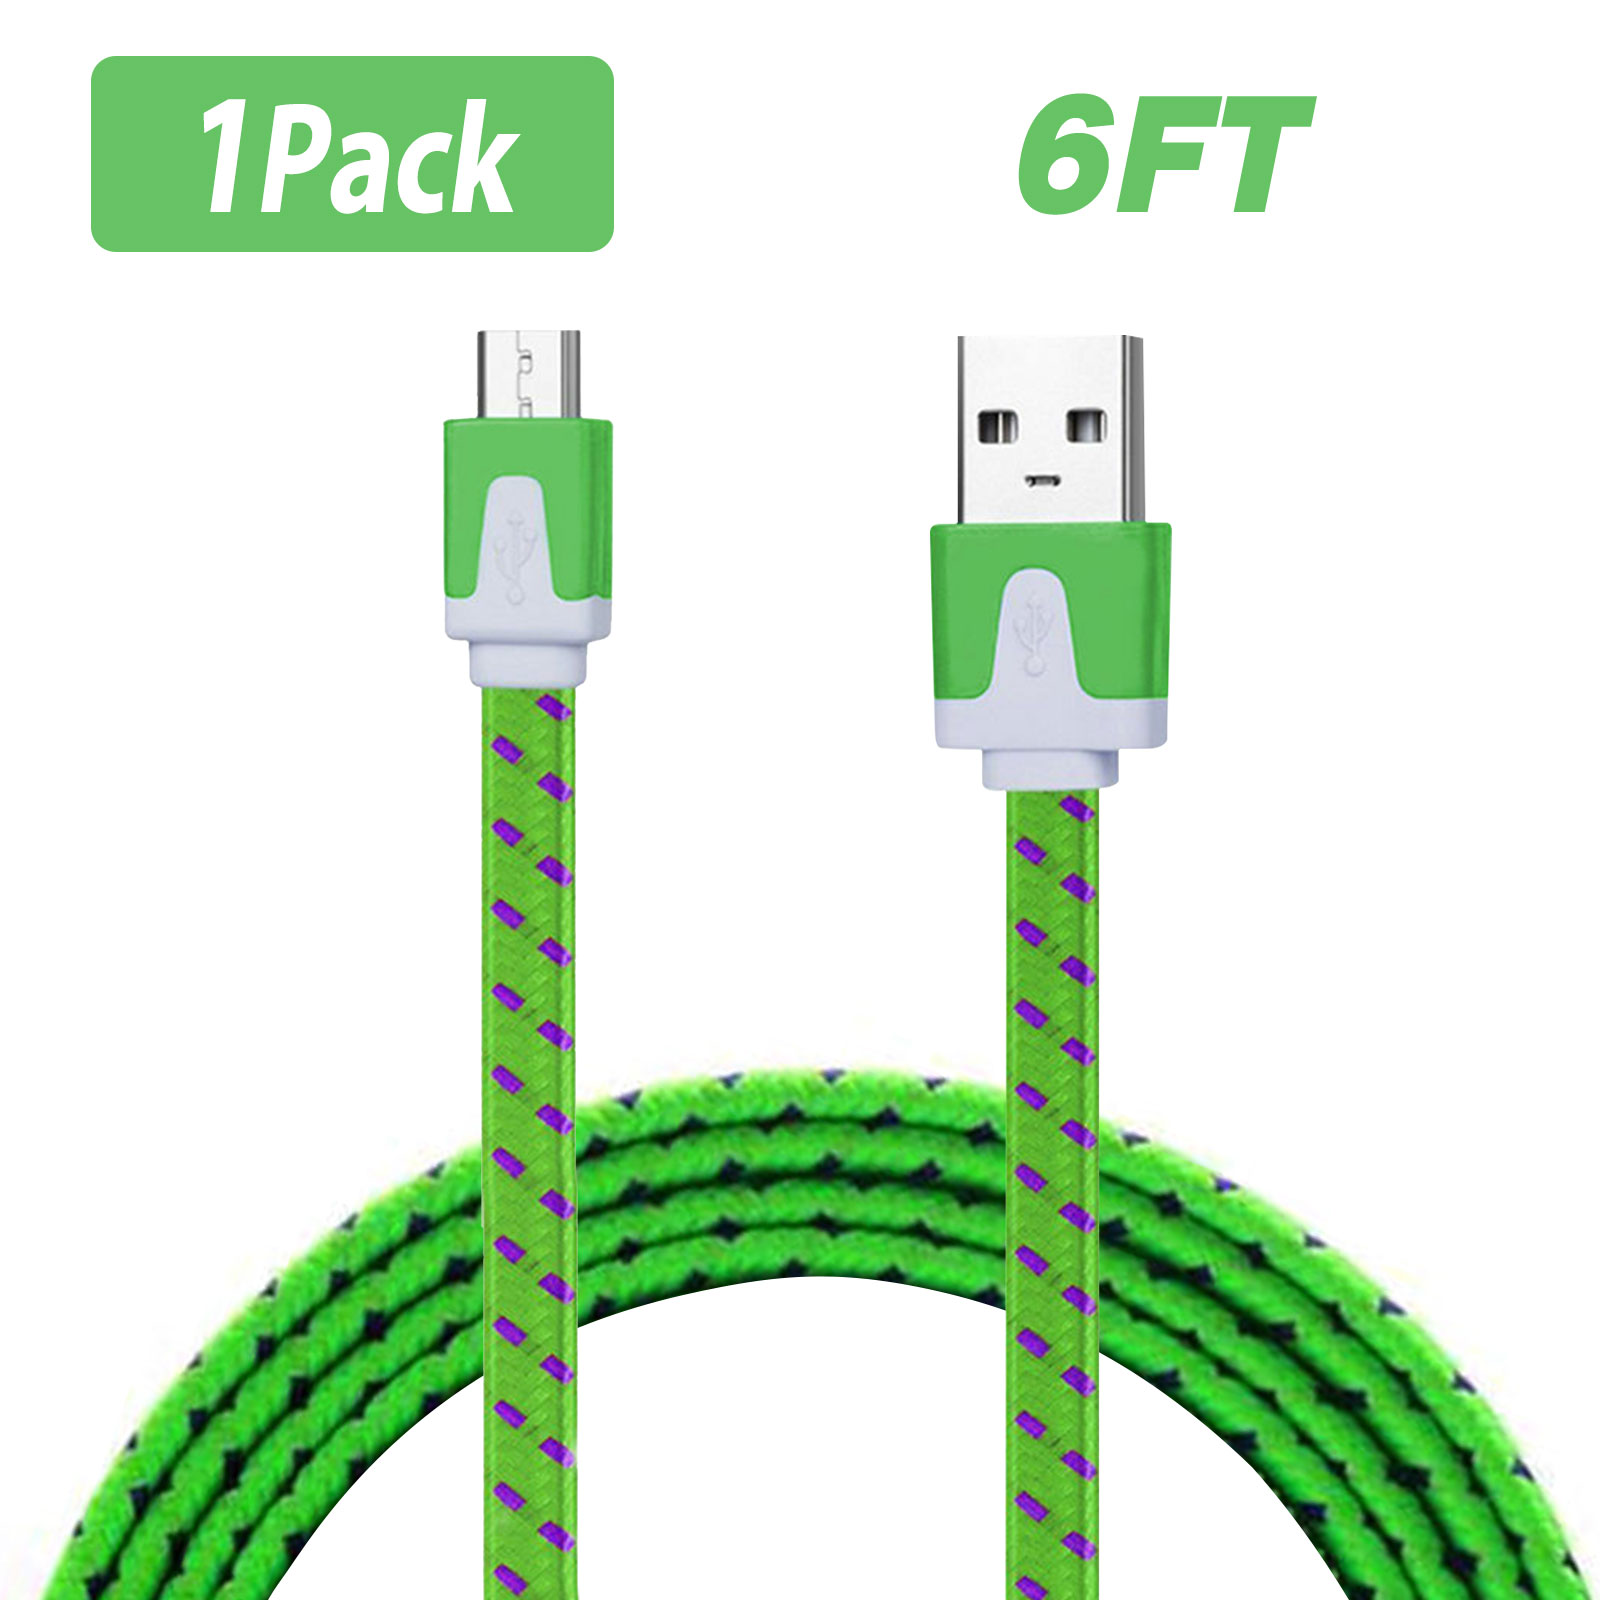 EEEkit 3/6-pack 6Ft Nylon Braided Micro USB Charging Sync Data Cable Charger Cord for Android Phones, Samsung Galaxy S7 S6/S5/Note 5,Tab A/E/S, LG G4/G3/G2/K5/K7/K8, HTC